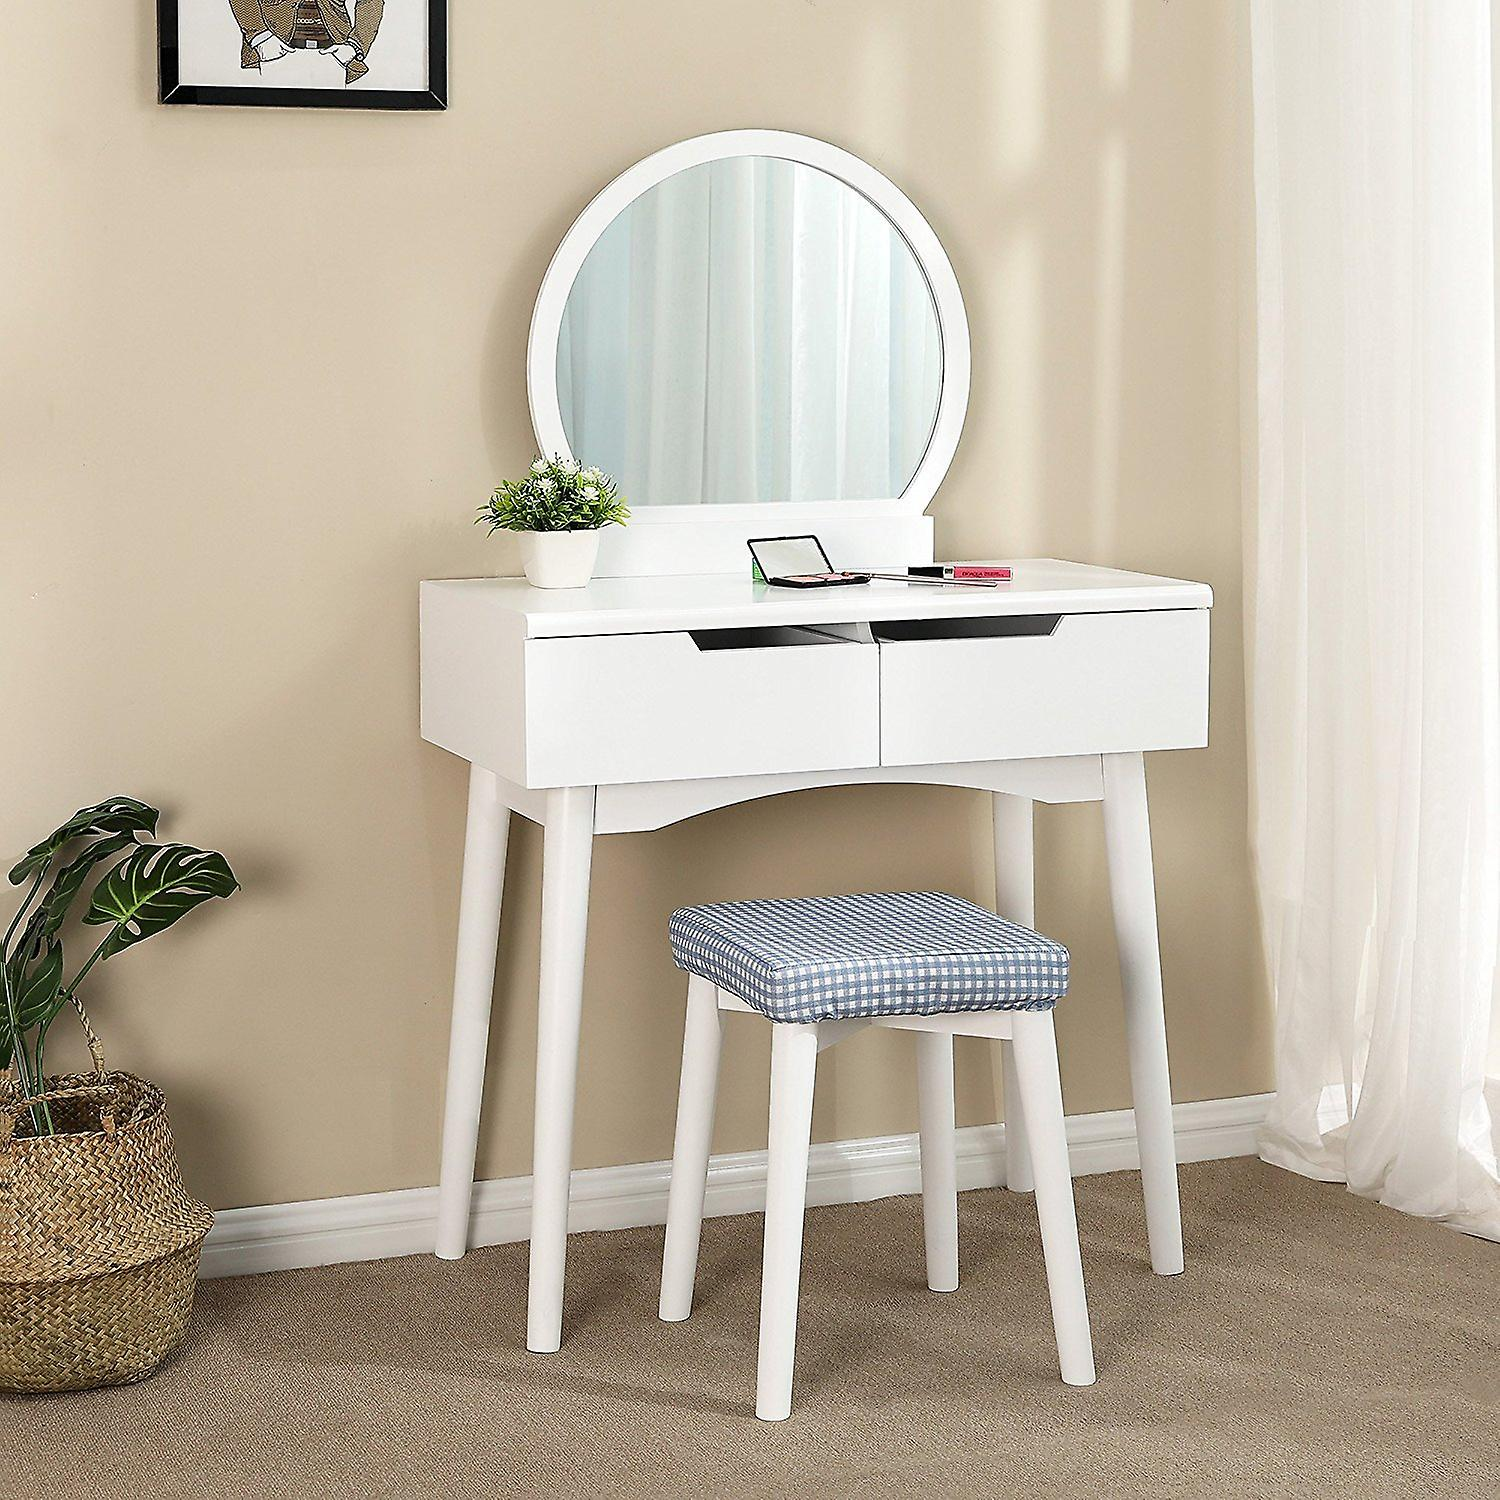 Modern vanity table with mirror and stool